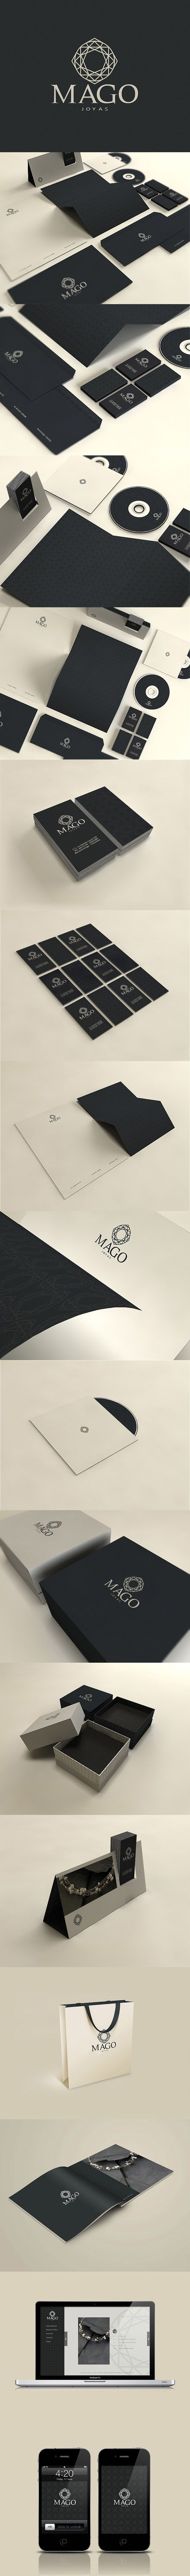 Branding Logo and Identity Mago by david espinosa